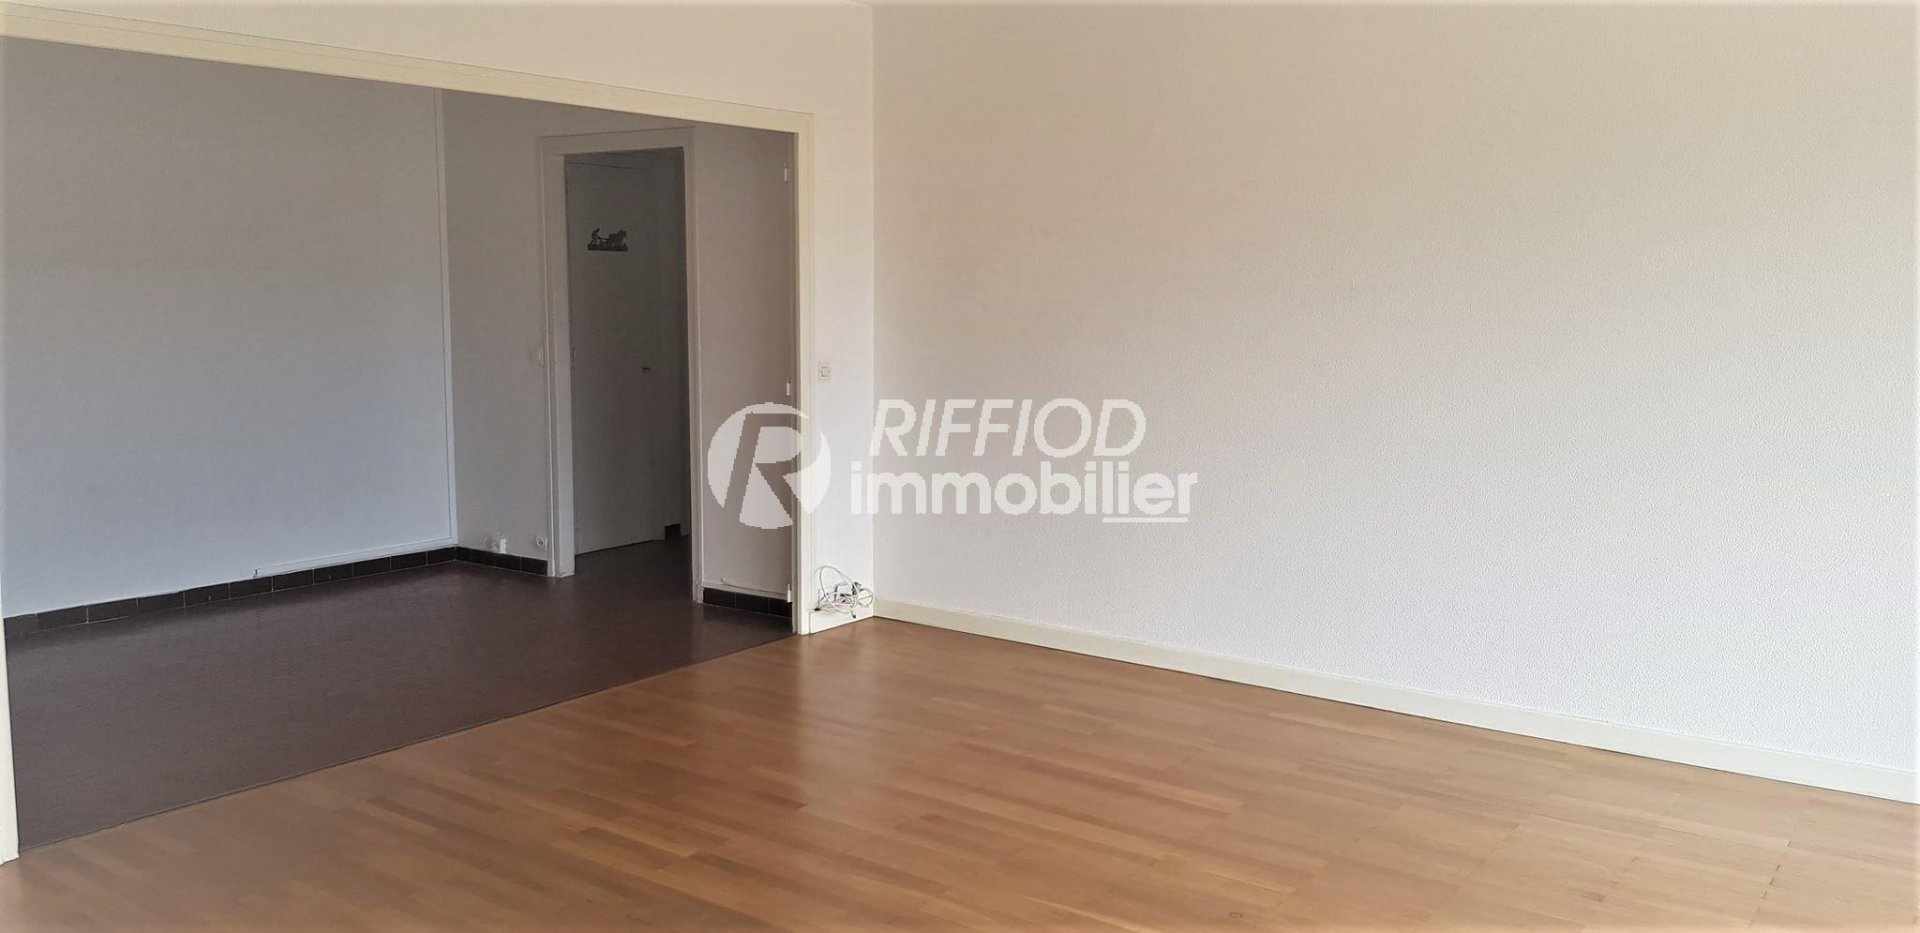 Appartement T5 - Centre ville